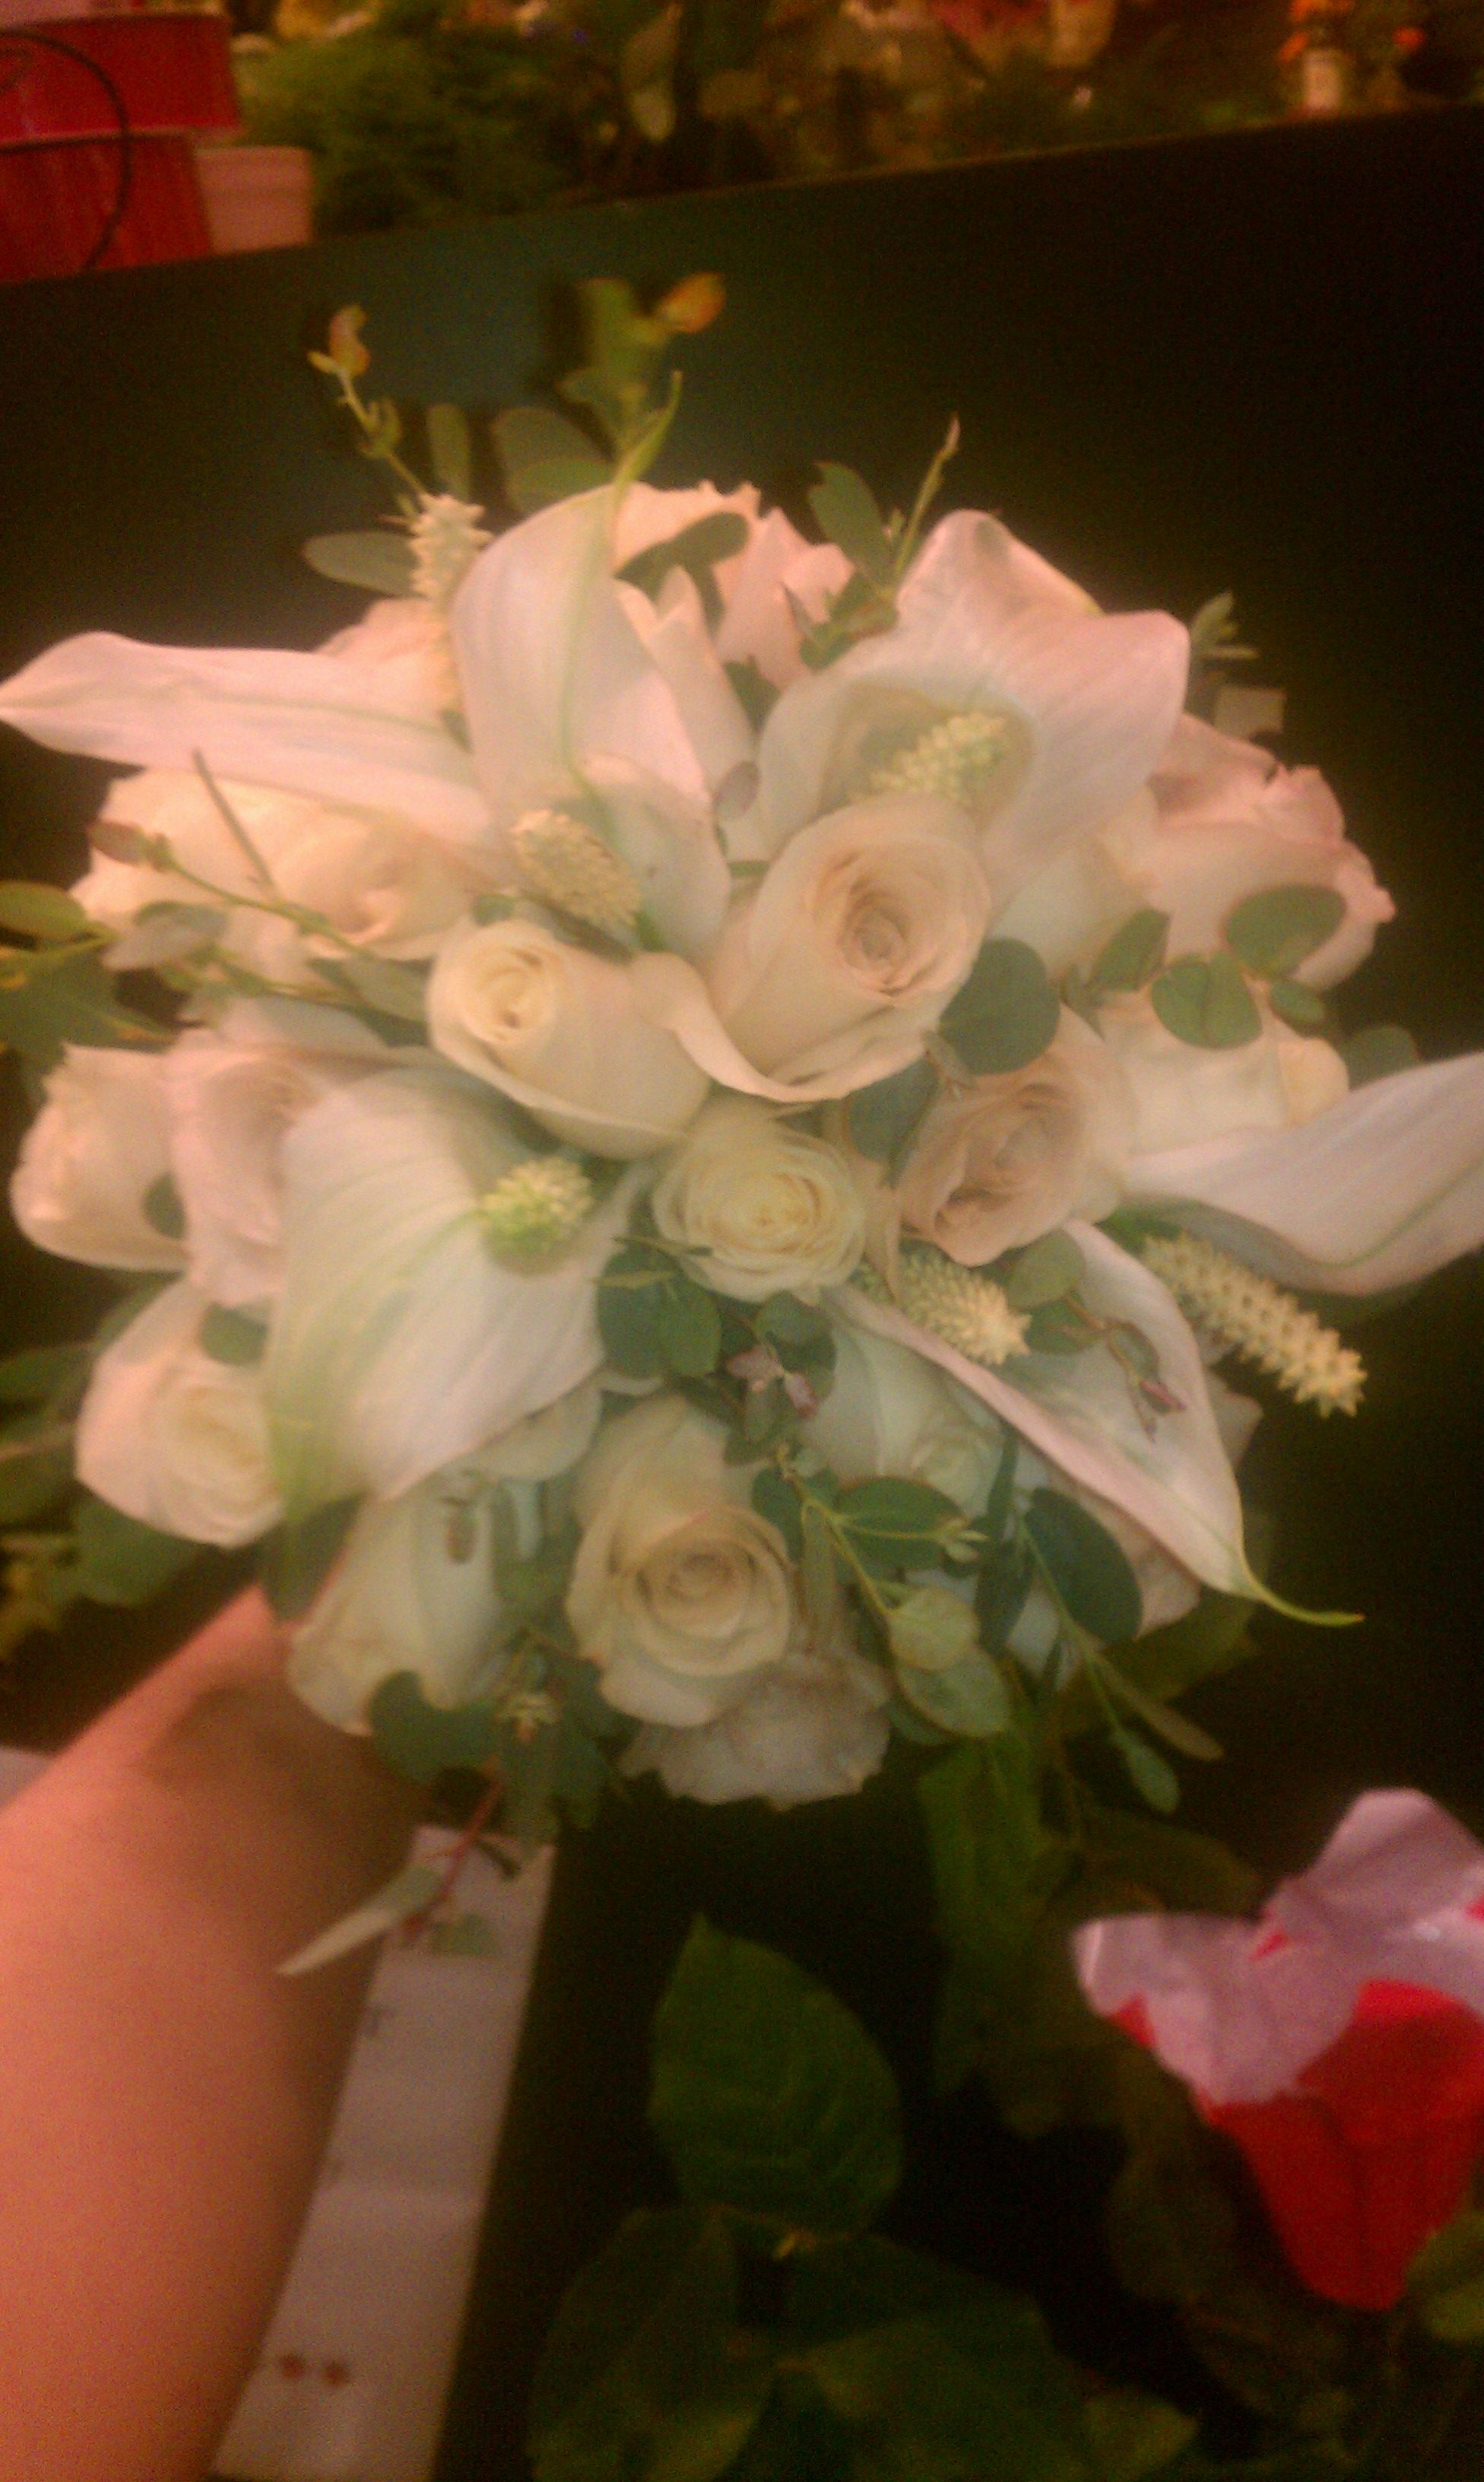 Top view of bridal bouquet vendella roses quicksand roses peace top view of bridal bouquet vendella roses quicksand roses peace lily blooms dhlflorist Gallery